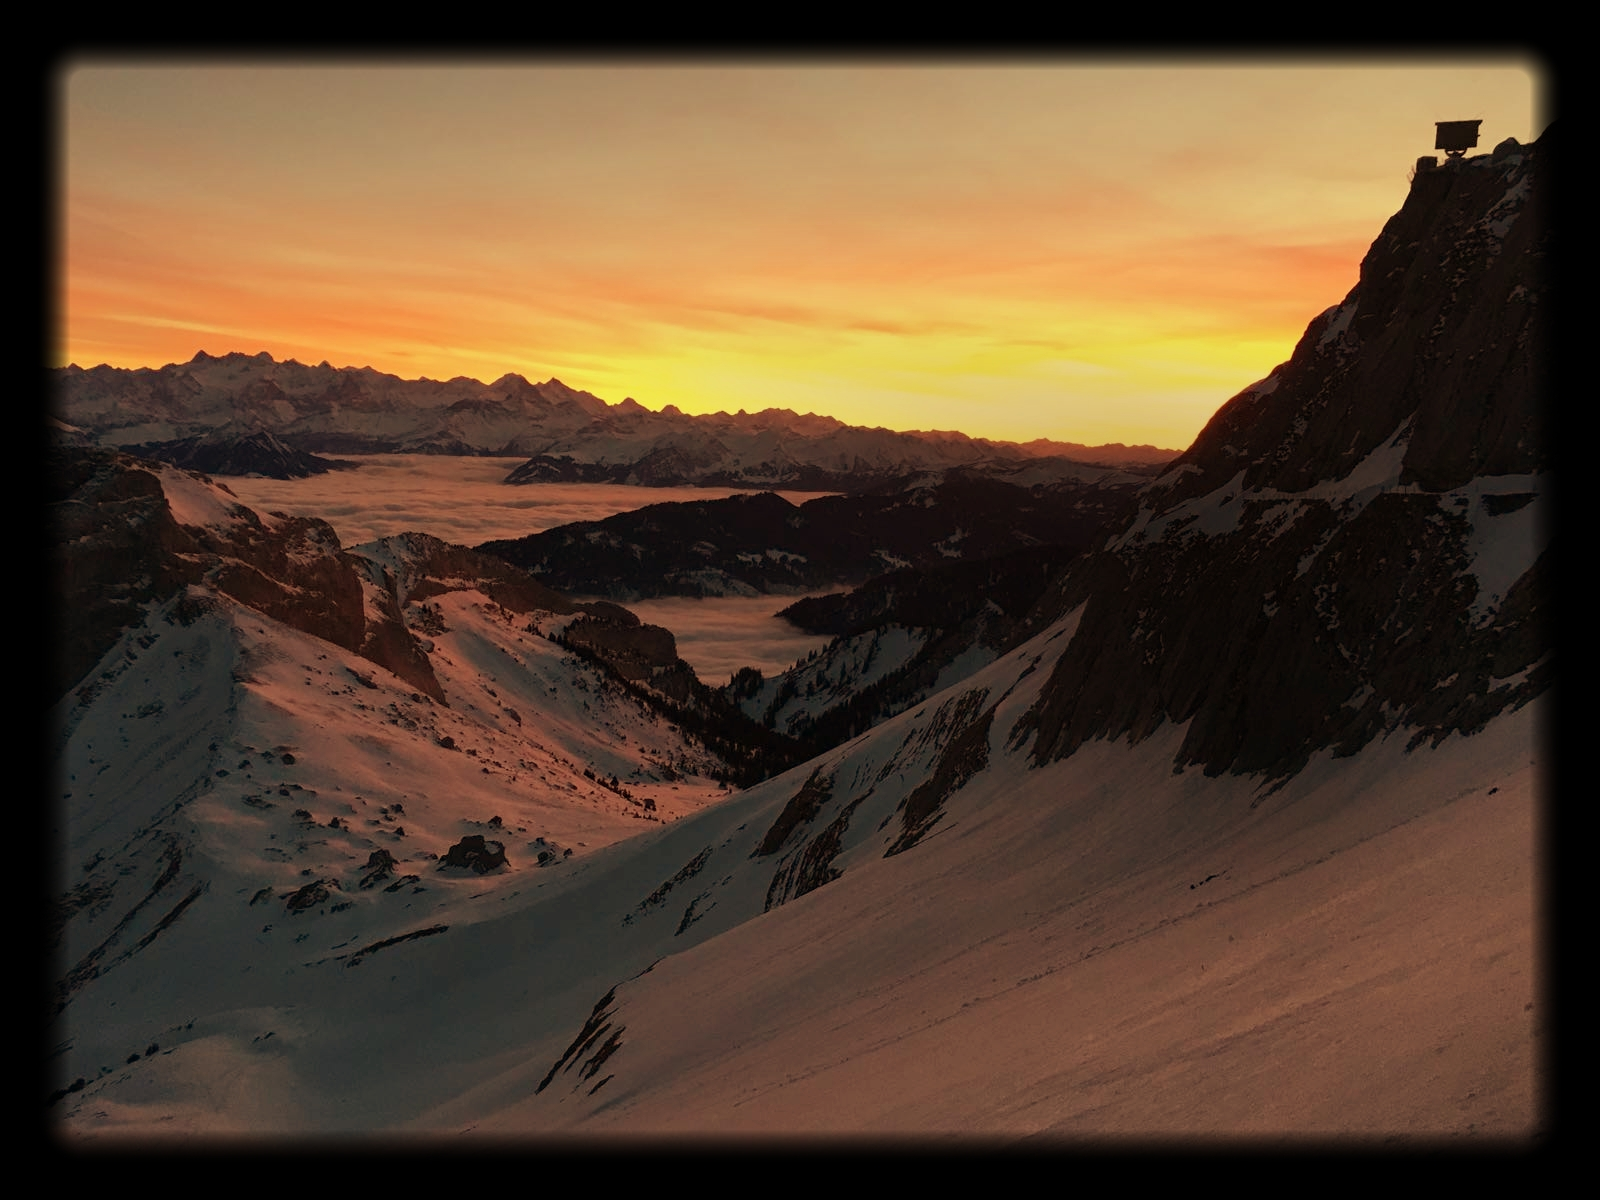 View_from_Mount_Pilatus_at_sunset